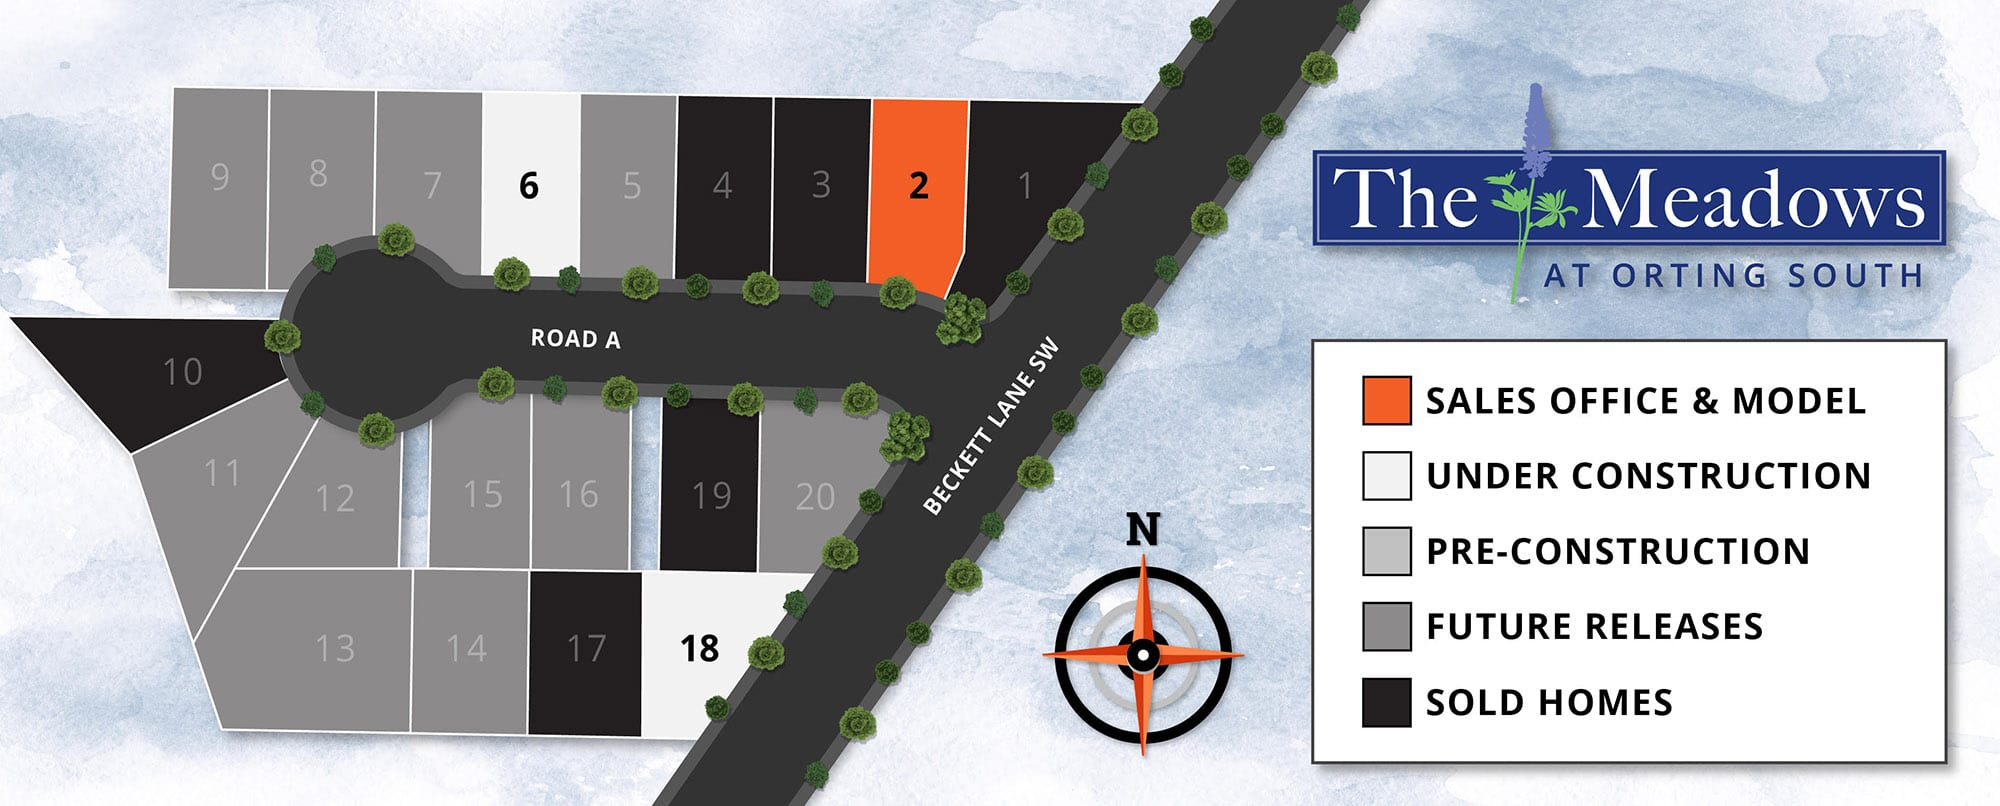 meadows-at-orting-site-map-7-13